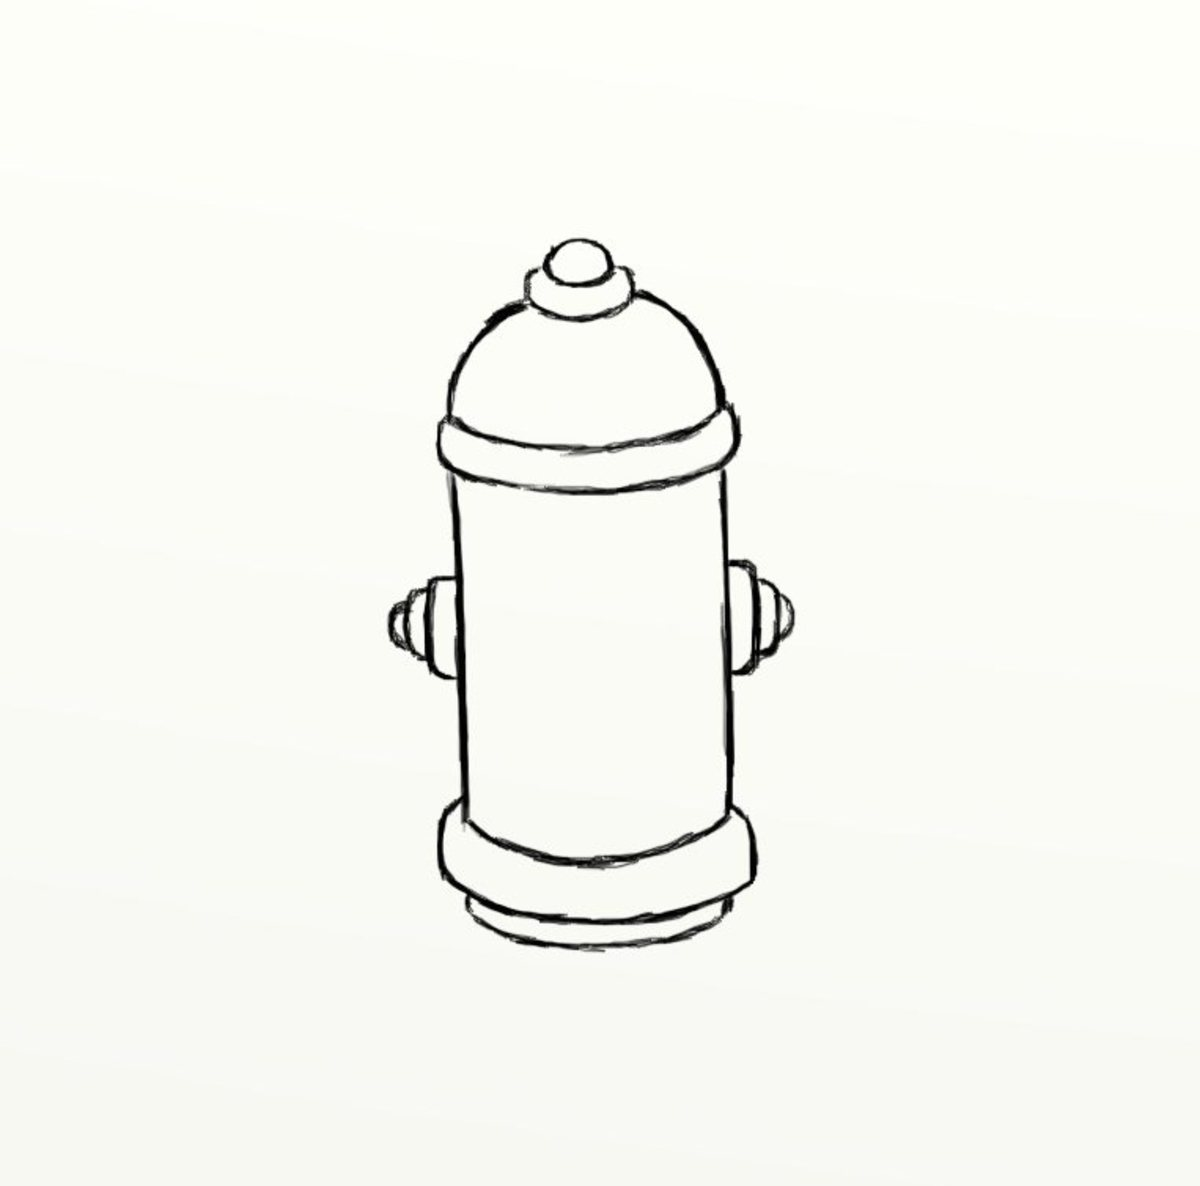 how to draw a fire hydrant